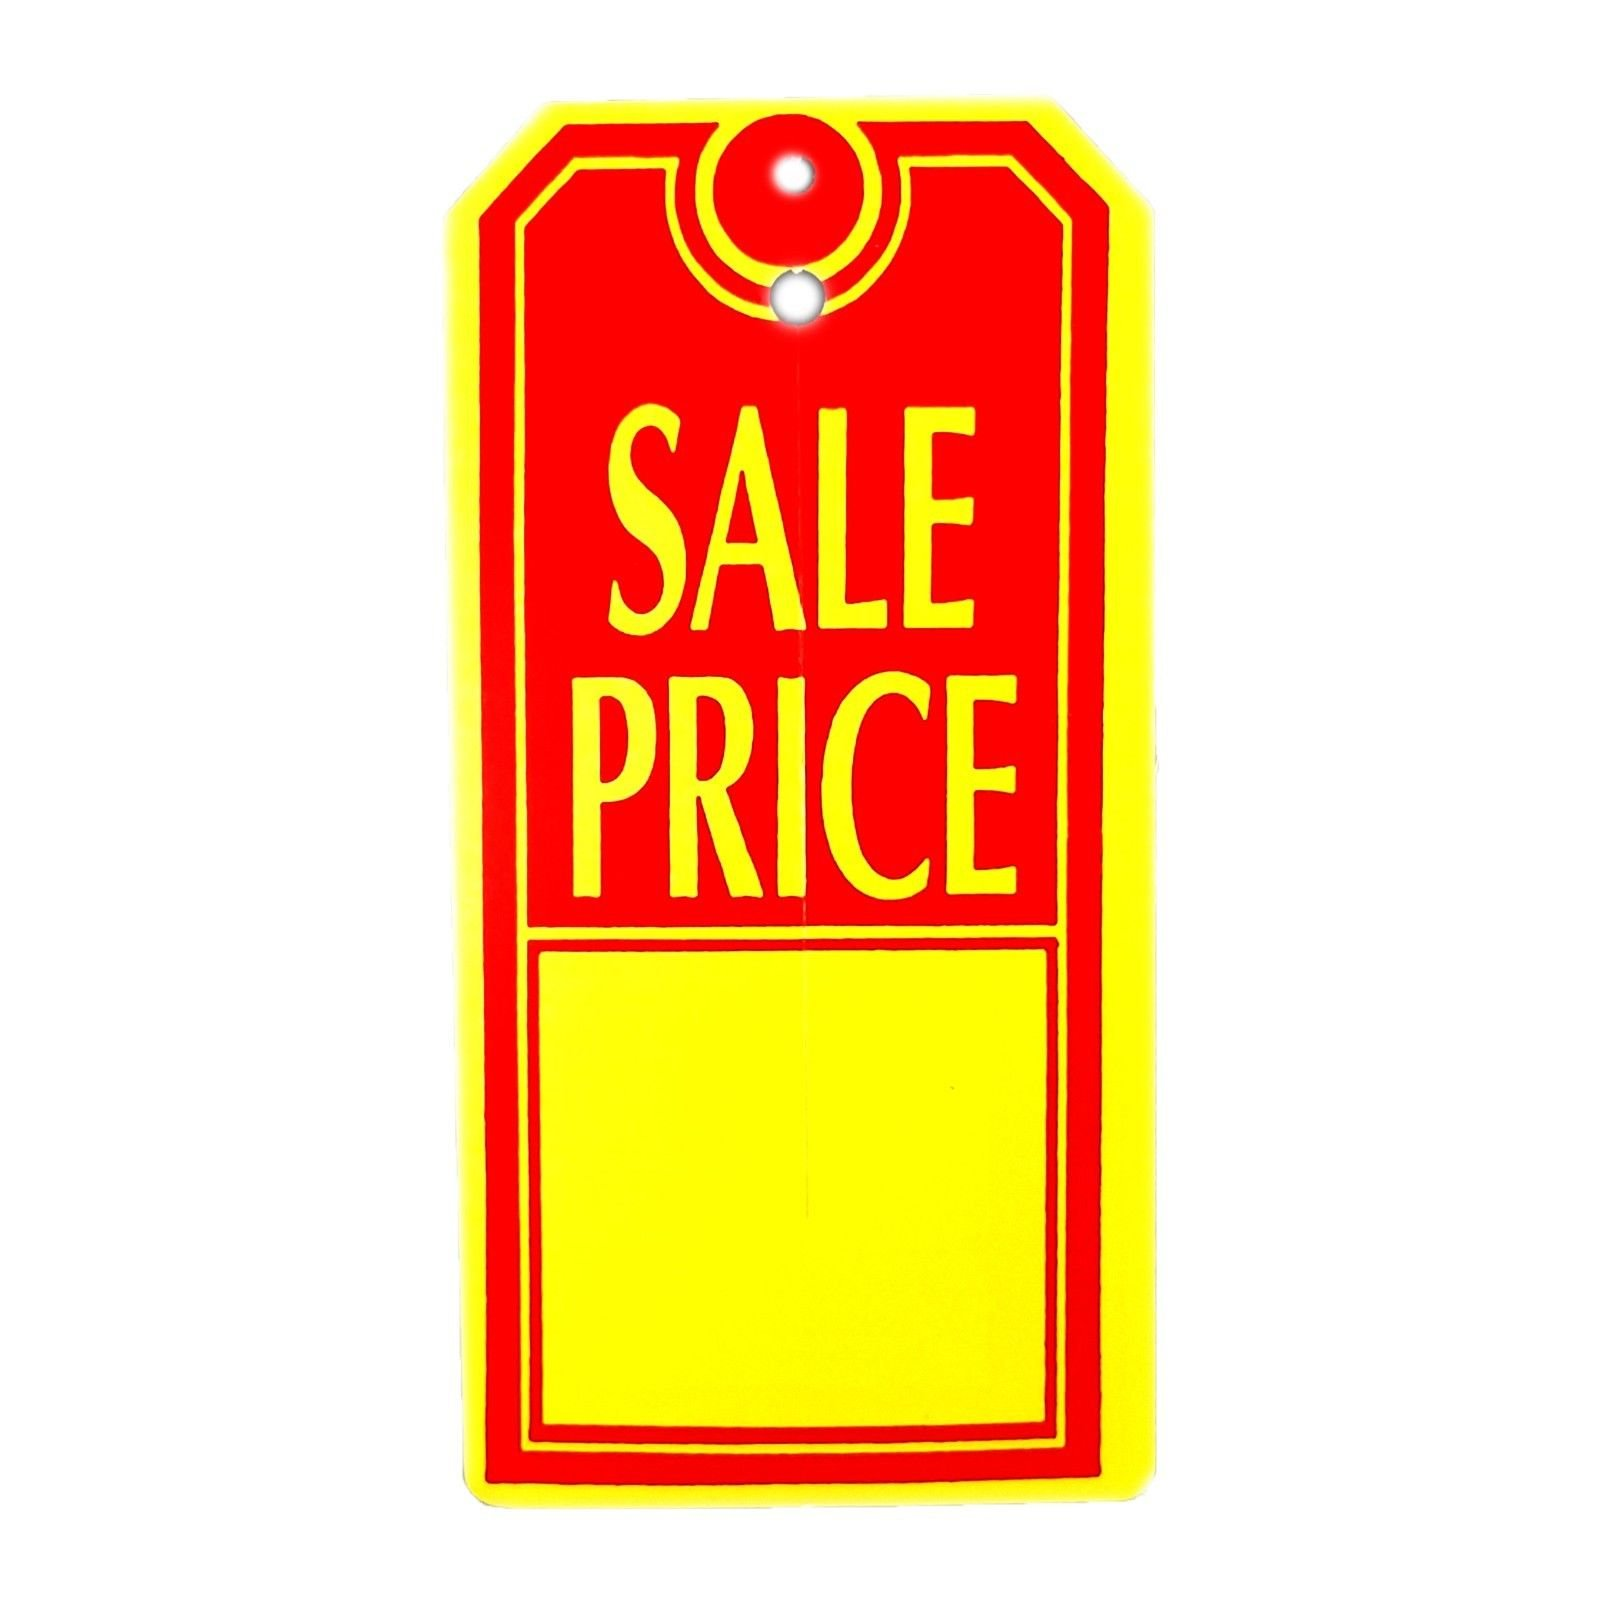 Sale Price Tags, 2.4'' W x 4.8'' H, Large Red & Yellow Merchandise Retail Labels - 1000 Pack